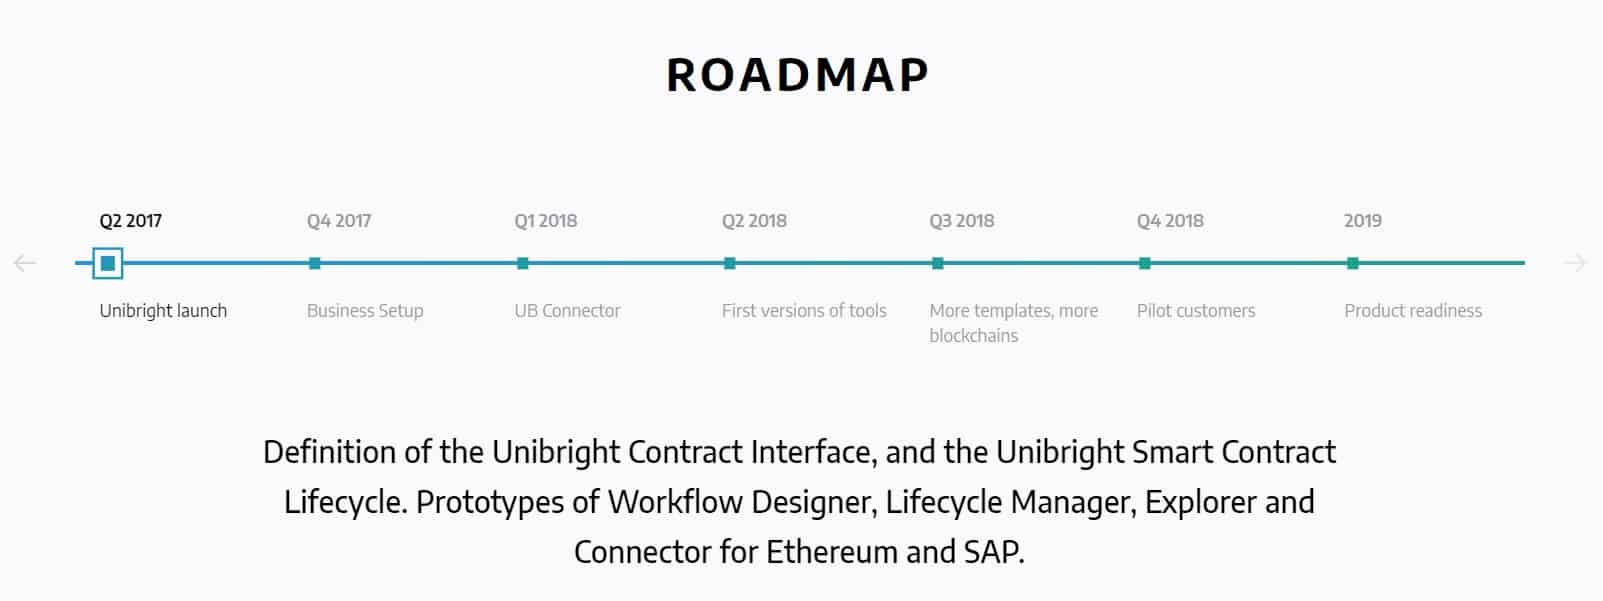 Unibright-Roadmap.jpg